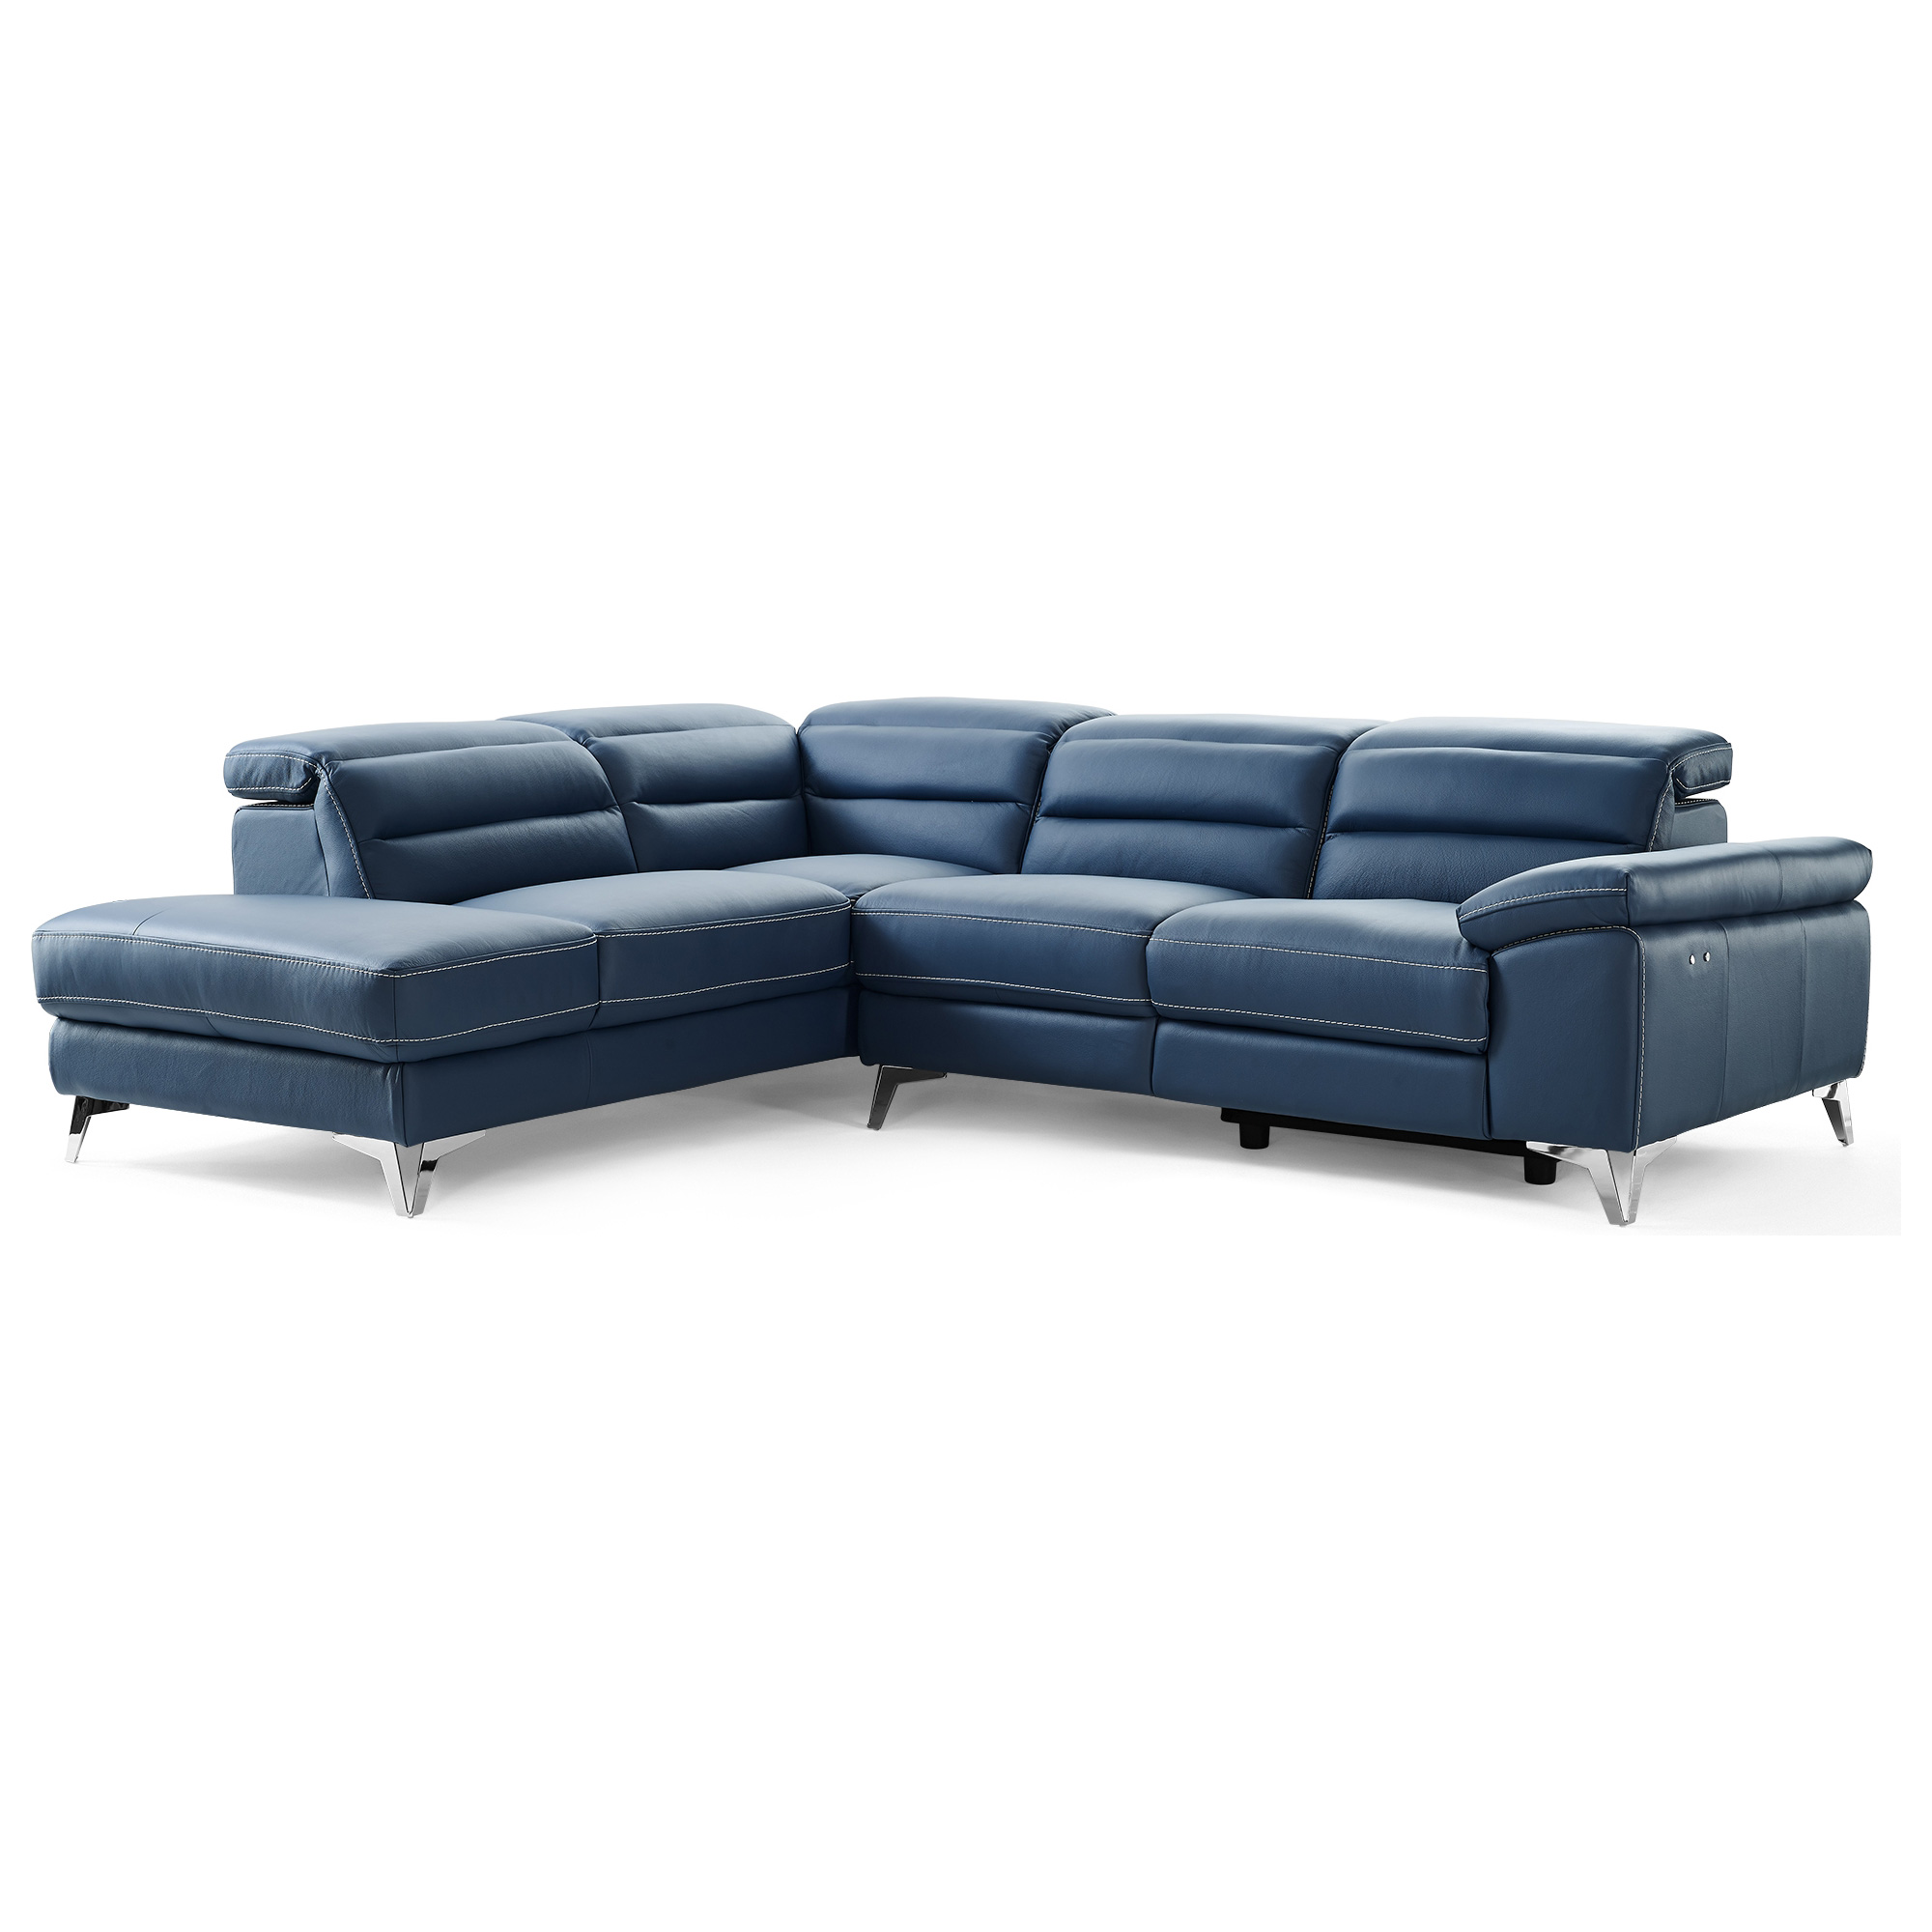 Terrific Johnson Sectional Sofa W Chaise On Left In Navy Blue Top Grain Italian Leather On Stainless Legs By Whiteline Modern Living Pabps2019 Chair Design Images Pabps2019Com